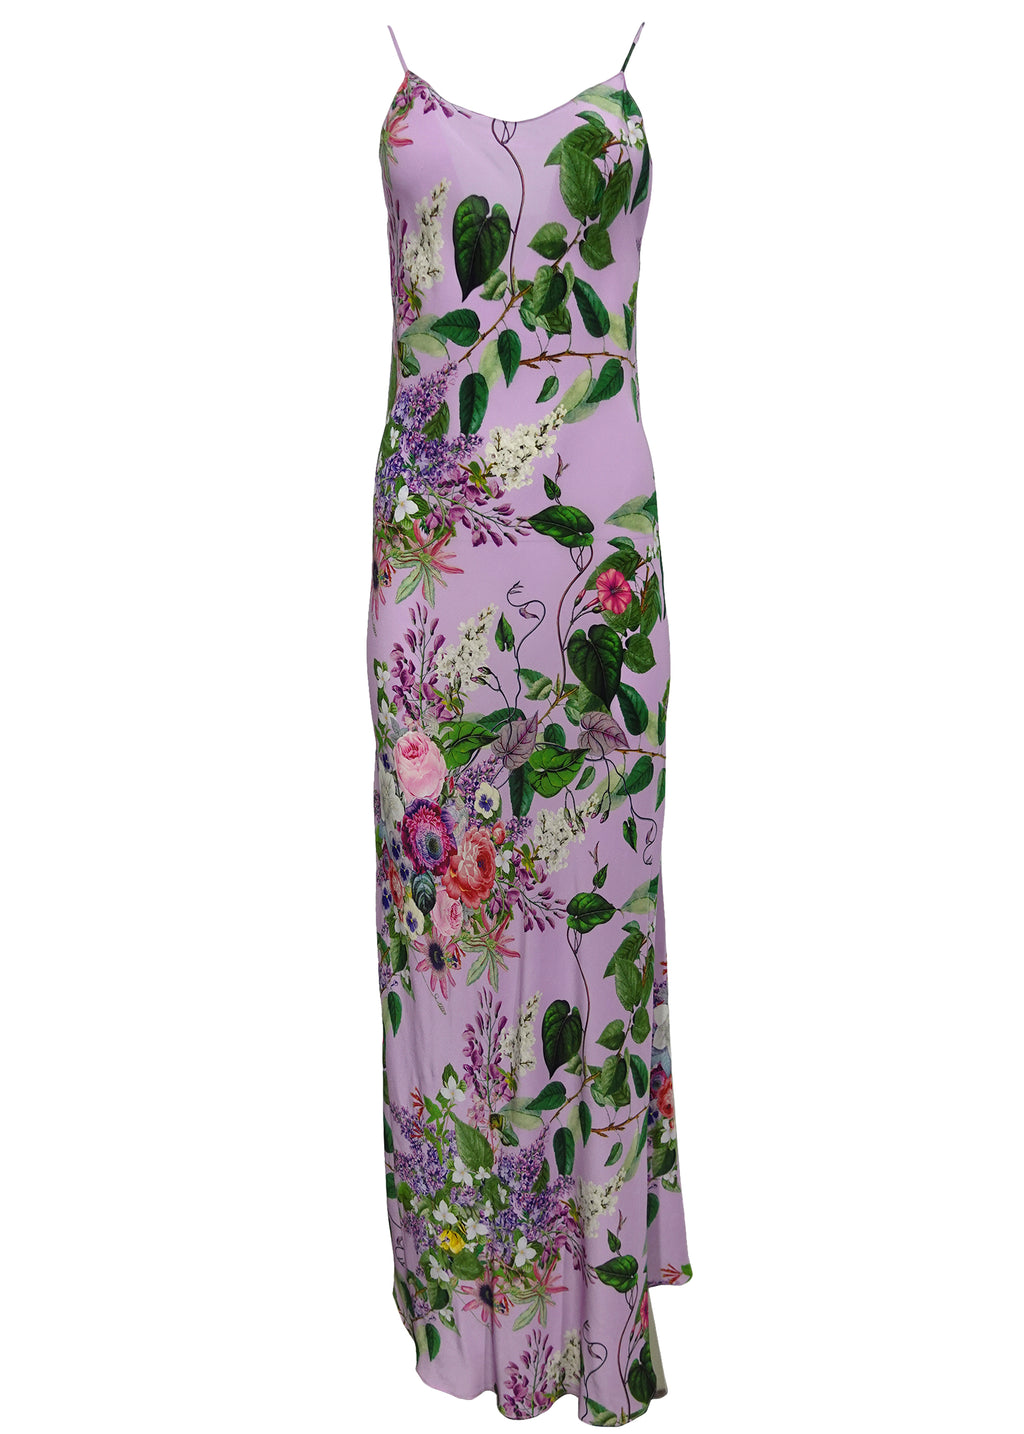 'HAMISH FLORAL' LONG SLIP DRESS - Women's Dresses - Libertine